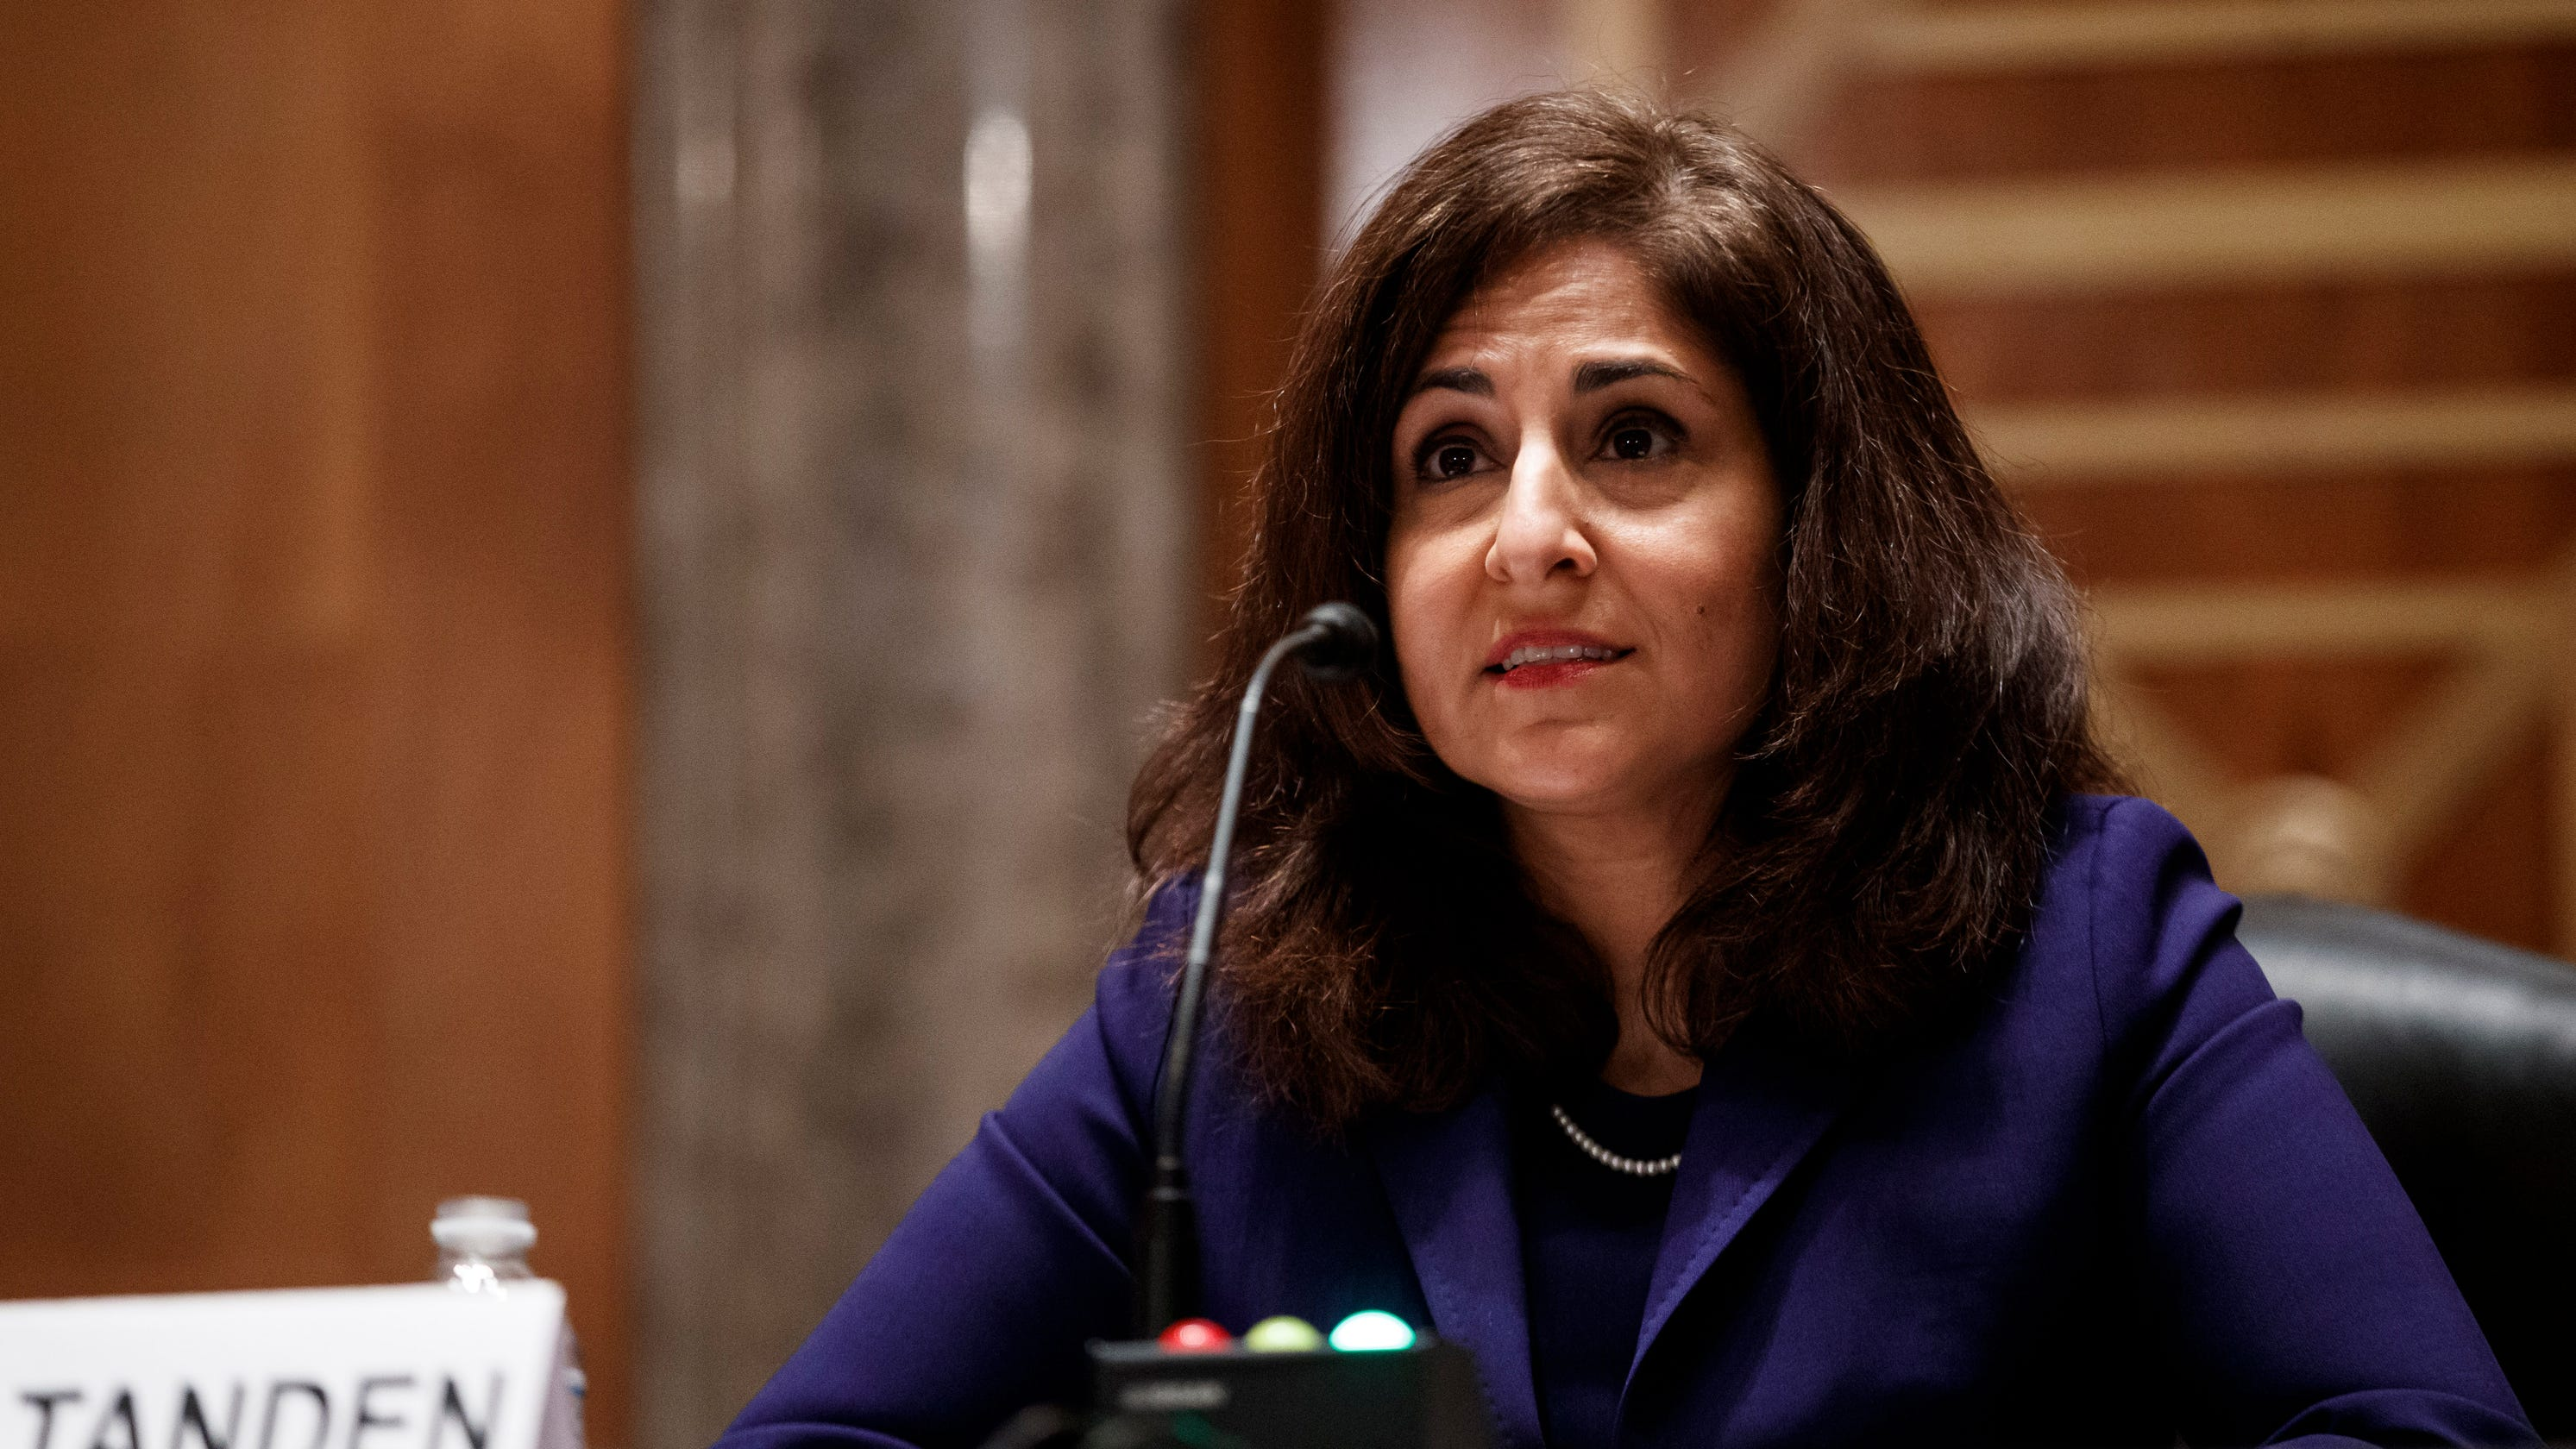 Biden budget pick Neera Tanden drops out of nomination process after confirmation process unravels